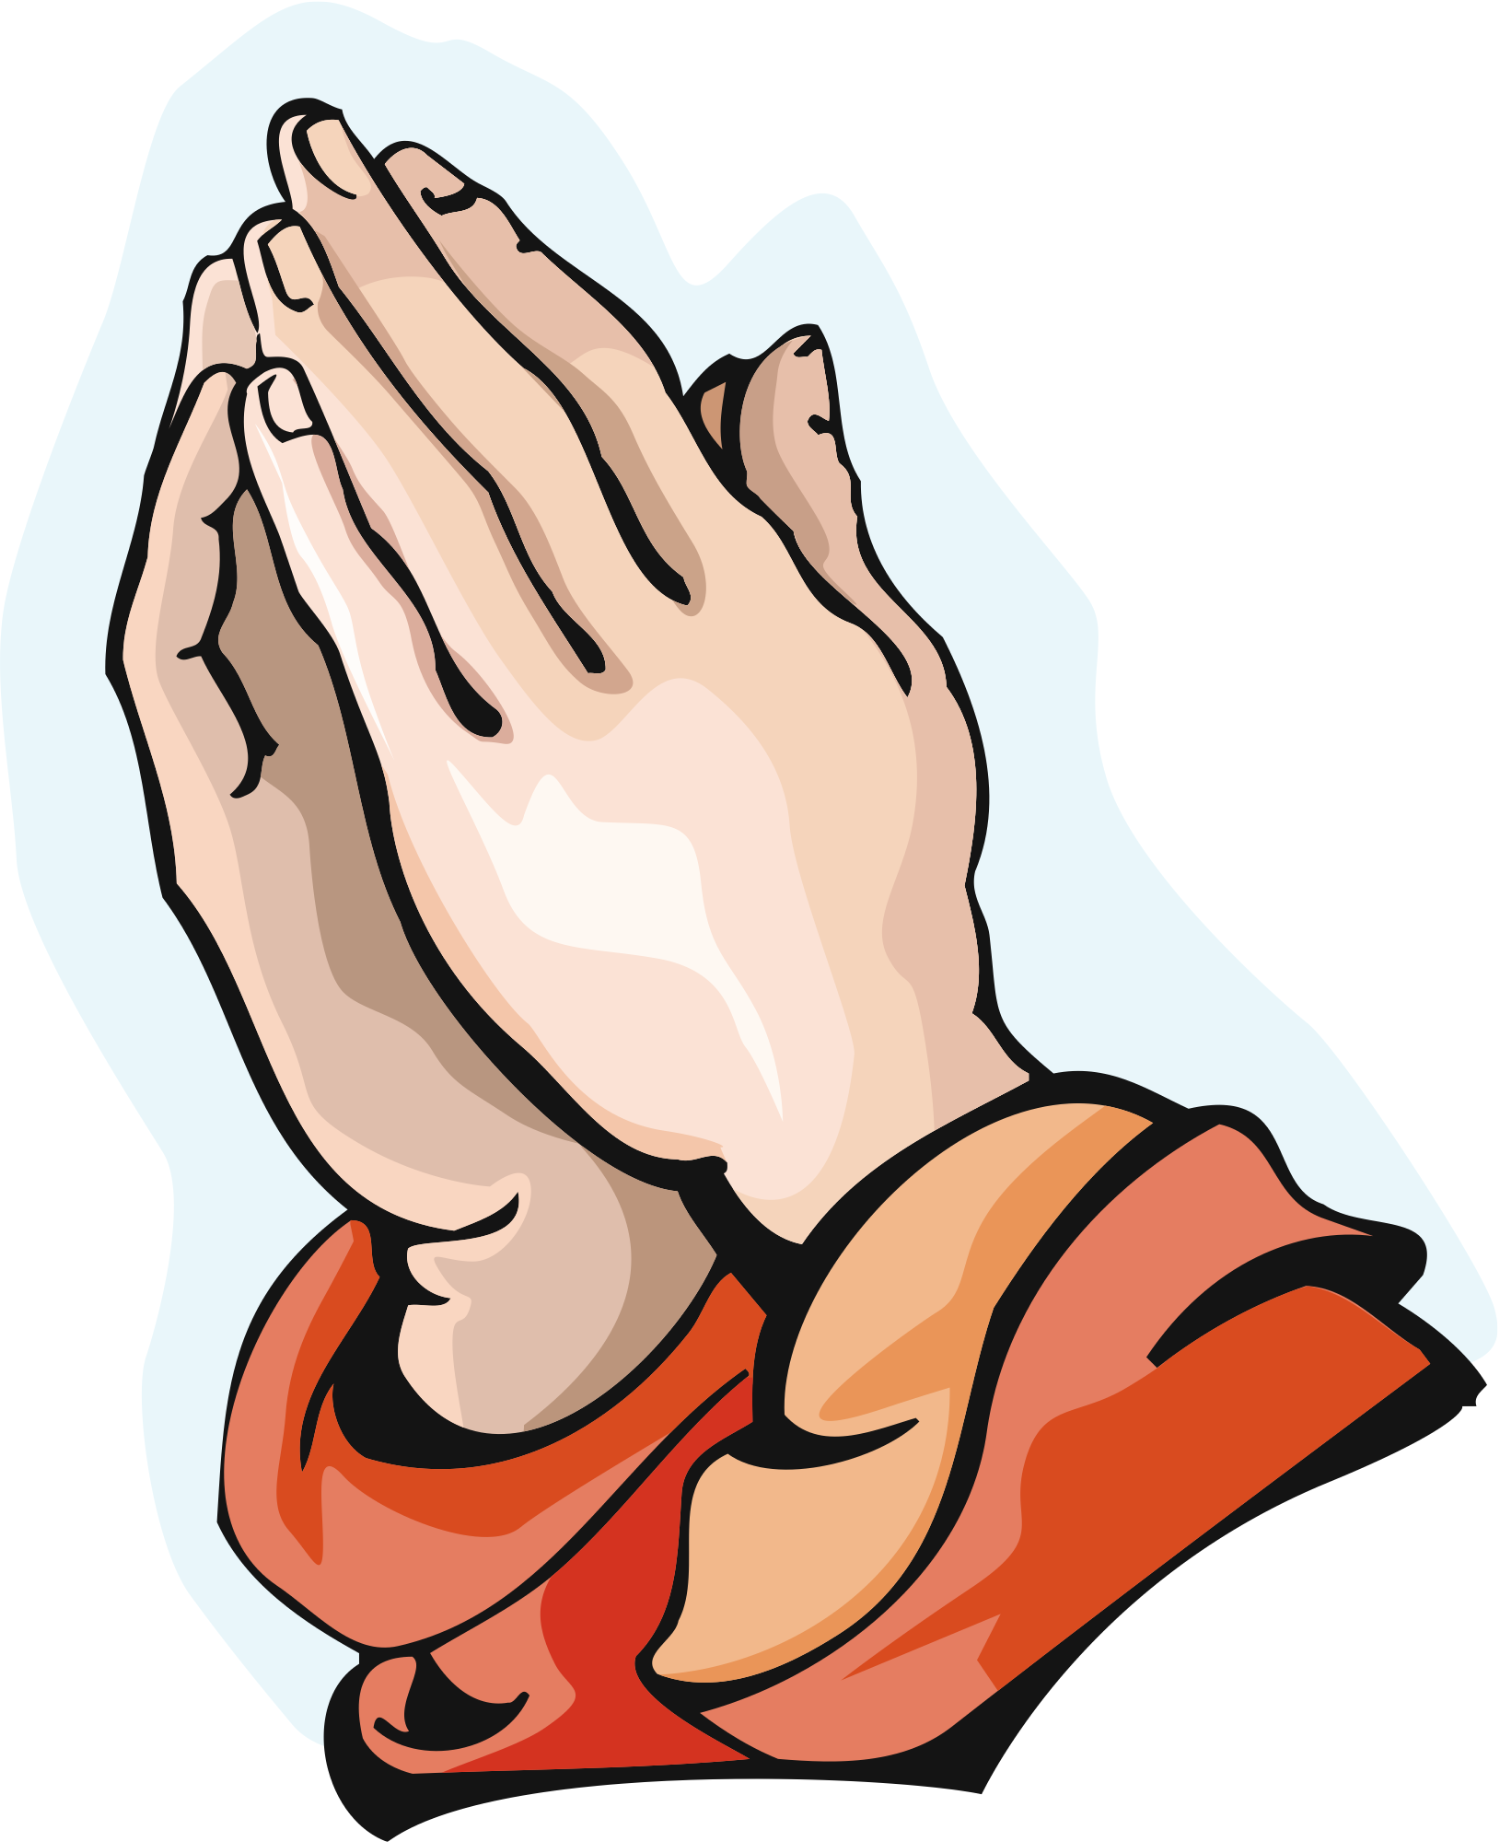 Praying hands 1 free clip art image 2